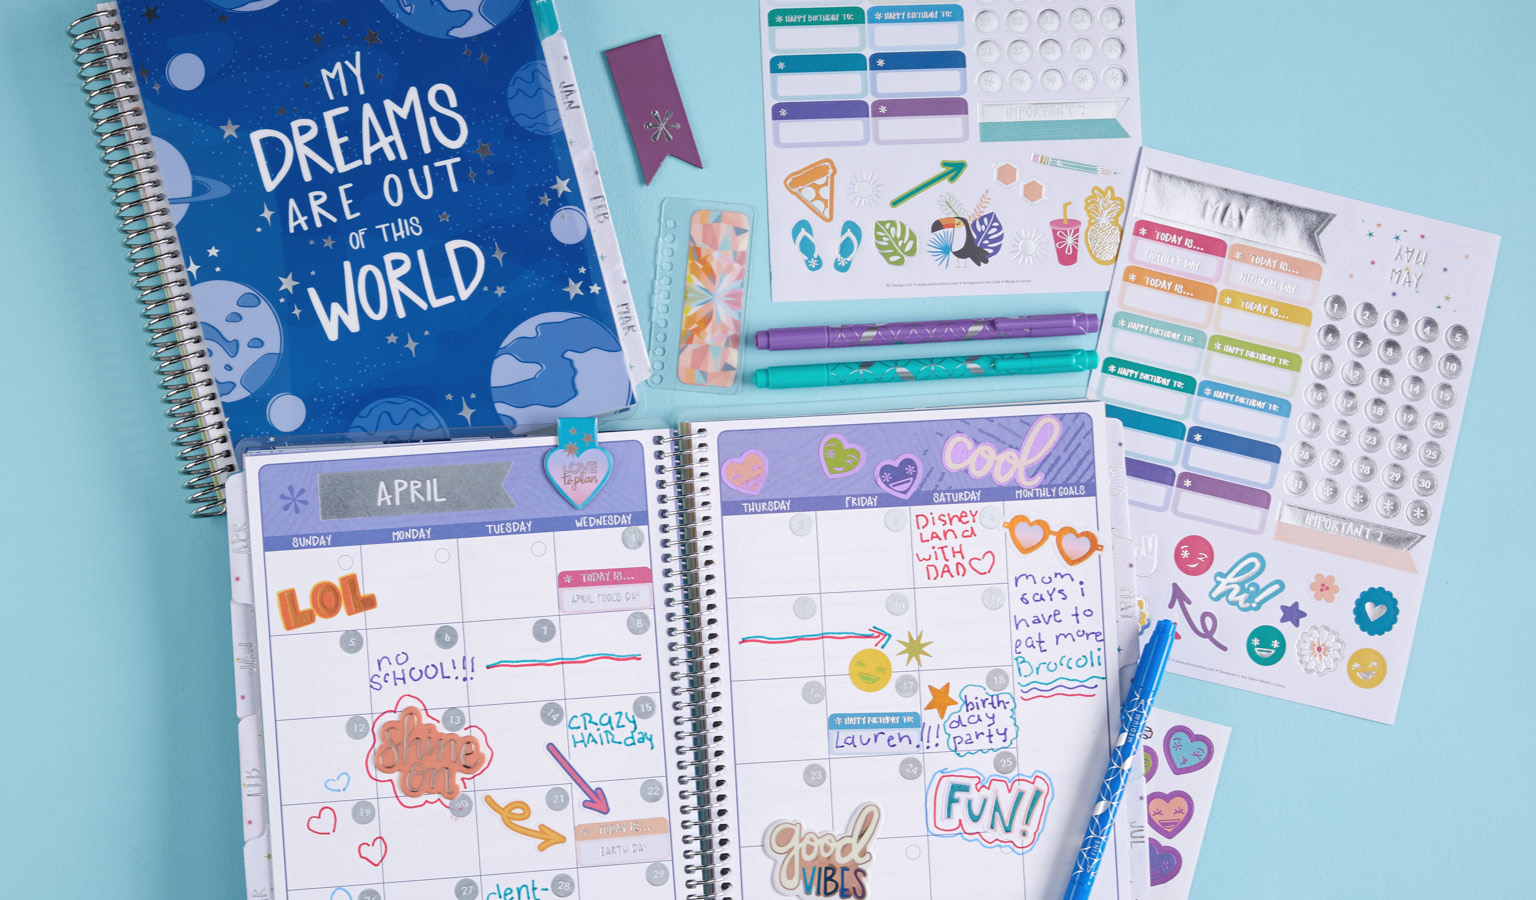 Office Supplies Caloundra Planners Notebooks Journals And Stationery Erin Condren